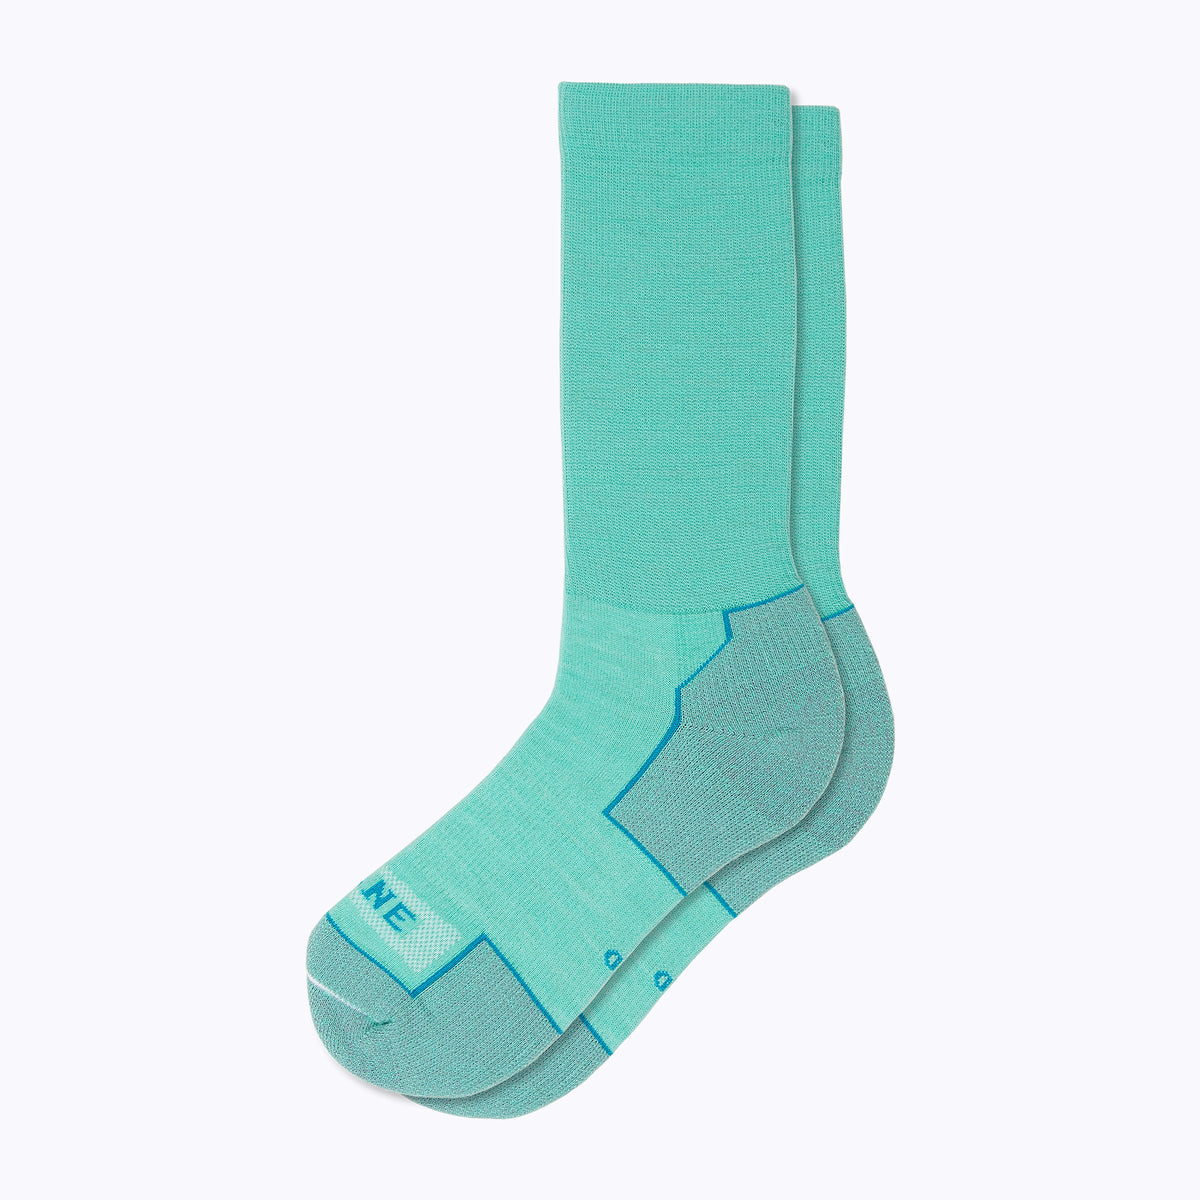 Everyday Women's Mid-Calf Socks - Turq by Canyon x Lane Socks